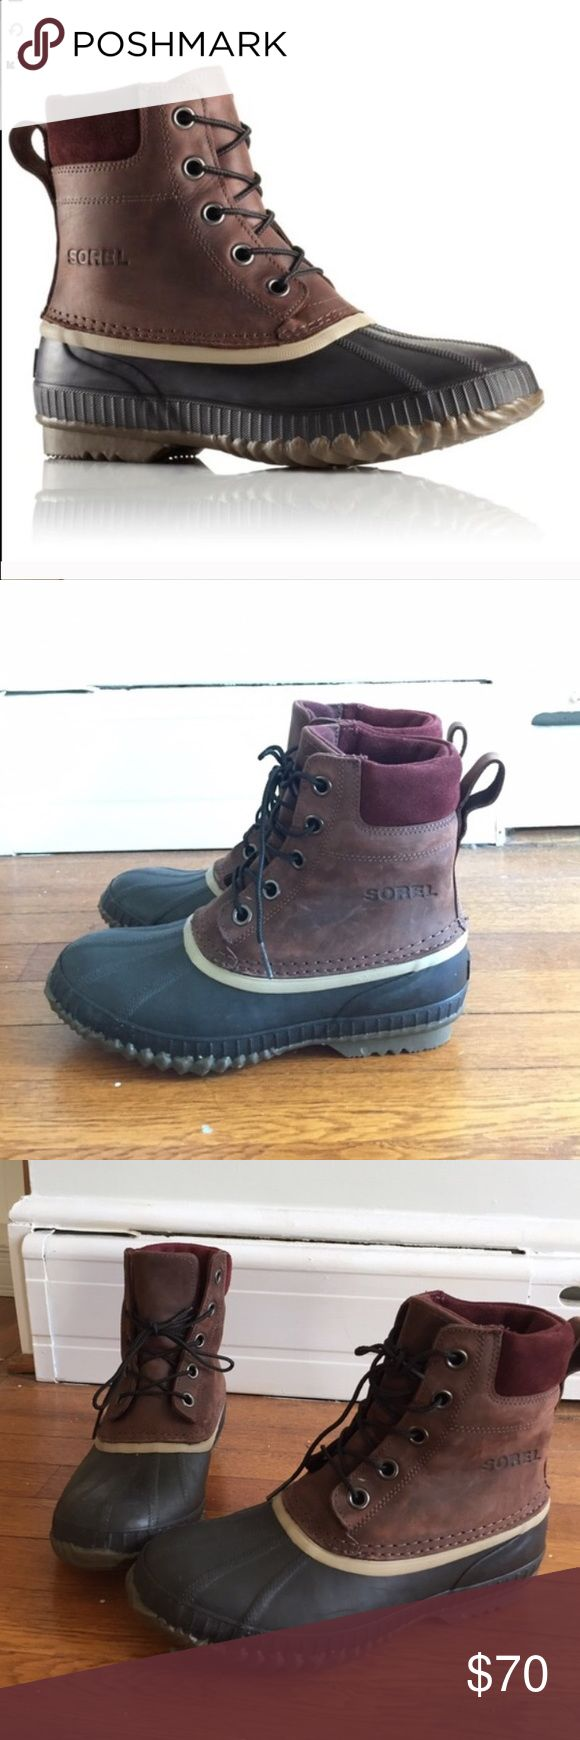 Sorel winter boots! Super warm boots, great for cold weather and and snow. Worn once (only selling because I already have a pair of winter boots) so they're in great condition. They're a men's 7 but fit like a woman's 8 or 9. Great for men and women, just all around stellar boots everyone should own. Sorel Shoes Winter & Rain Boots